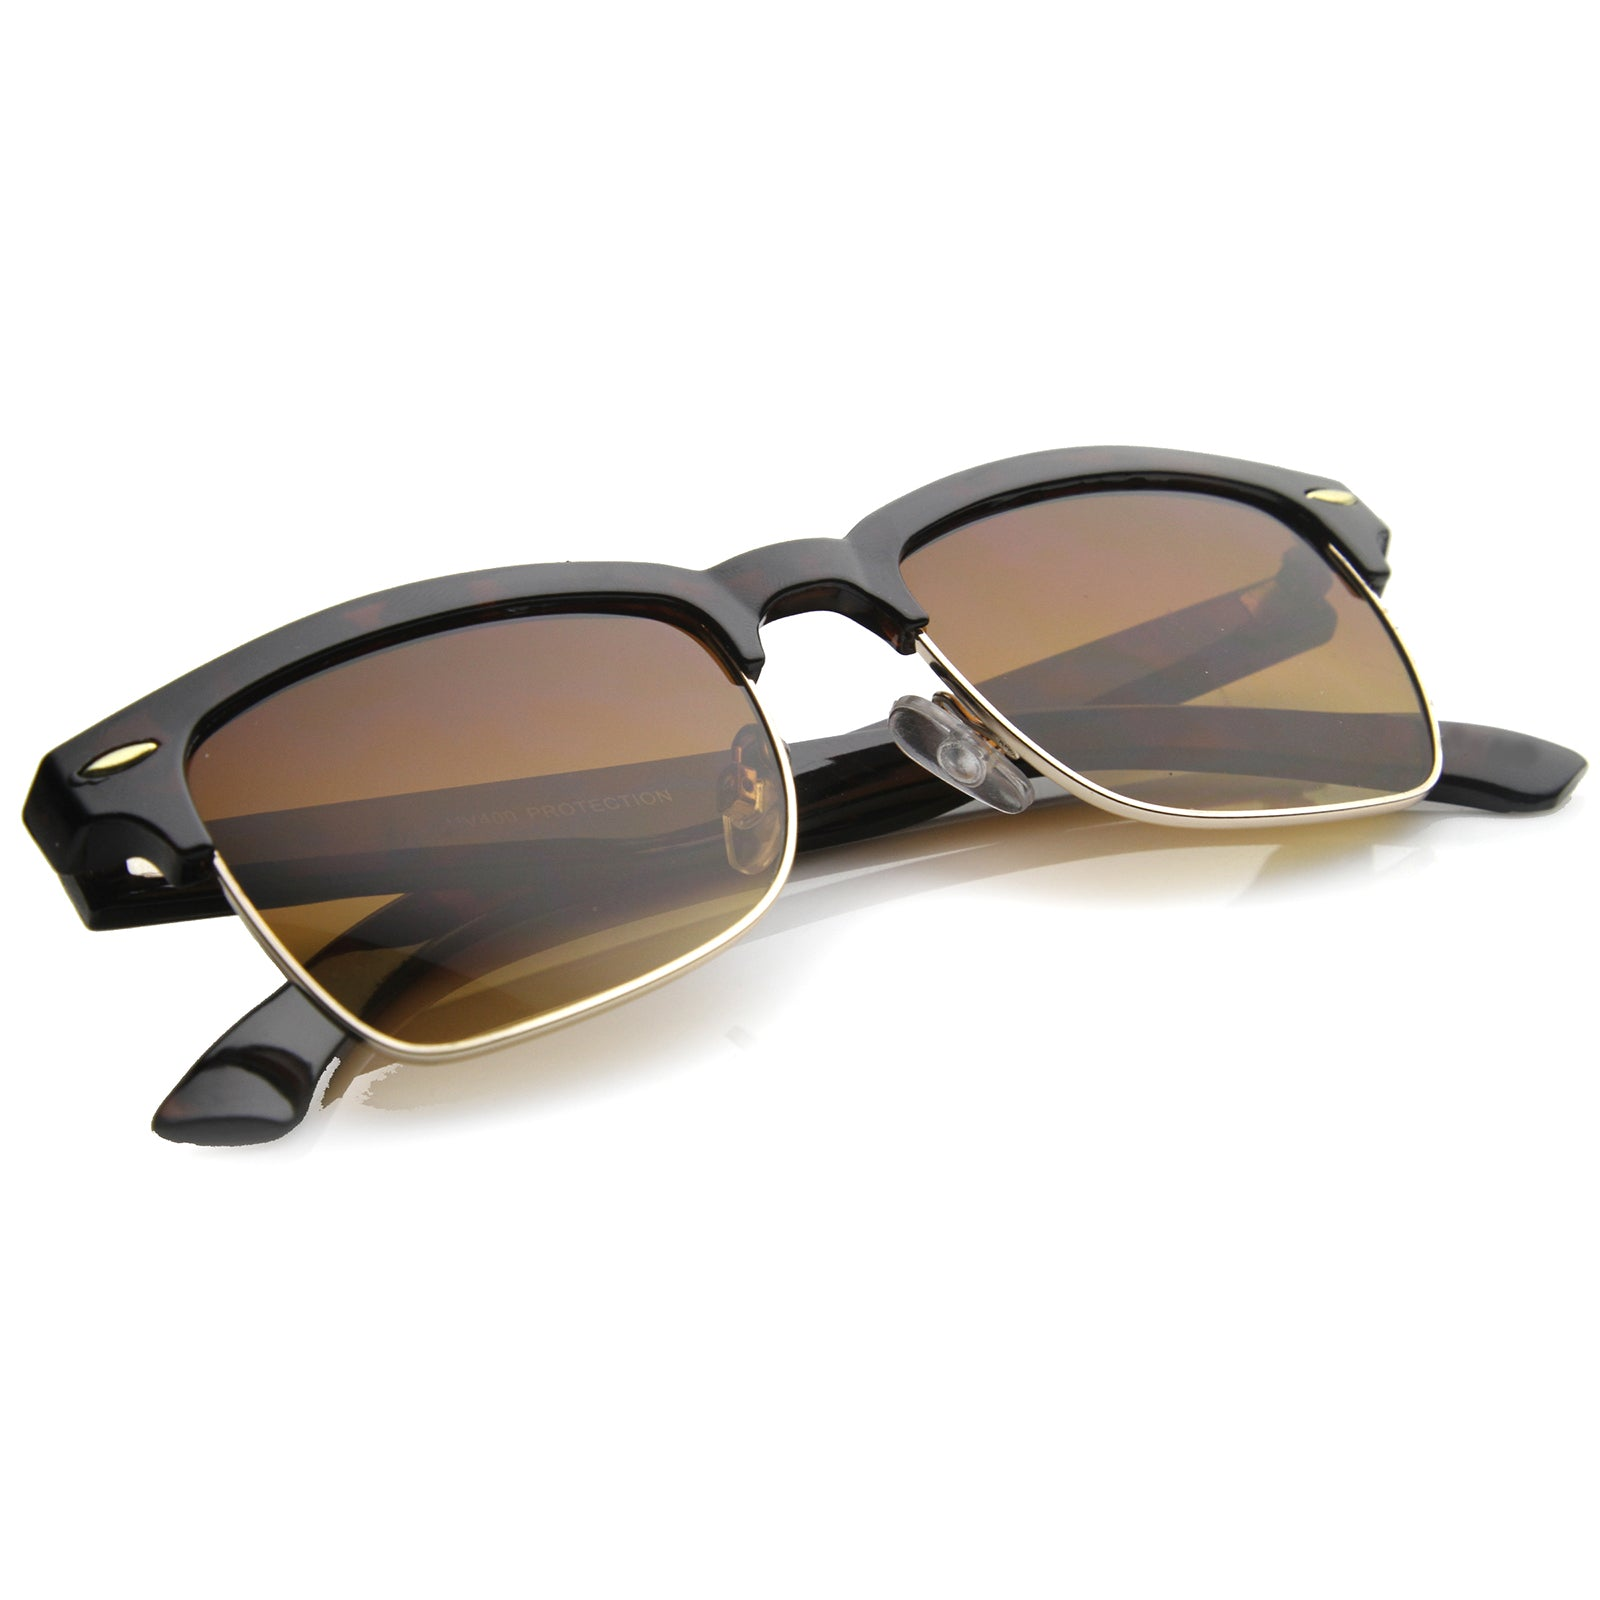 Mens Semi-Rimless Sunglasses With UV400 Protected Composite Lens - sunglass.la - 4